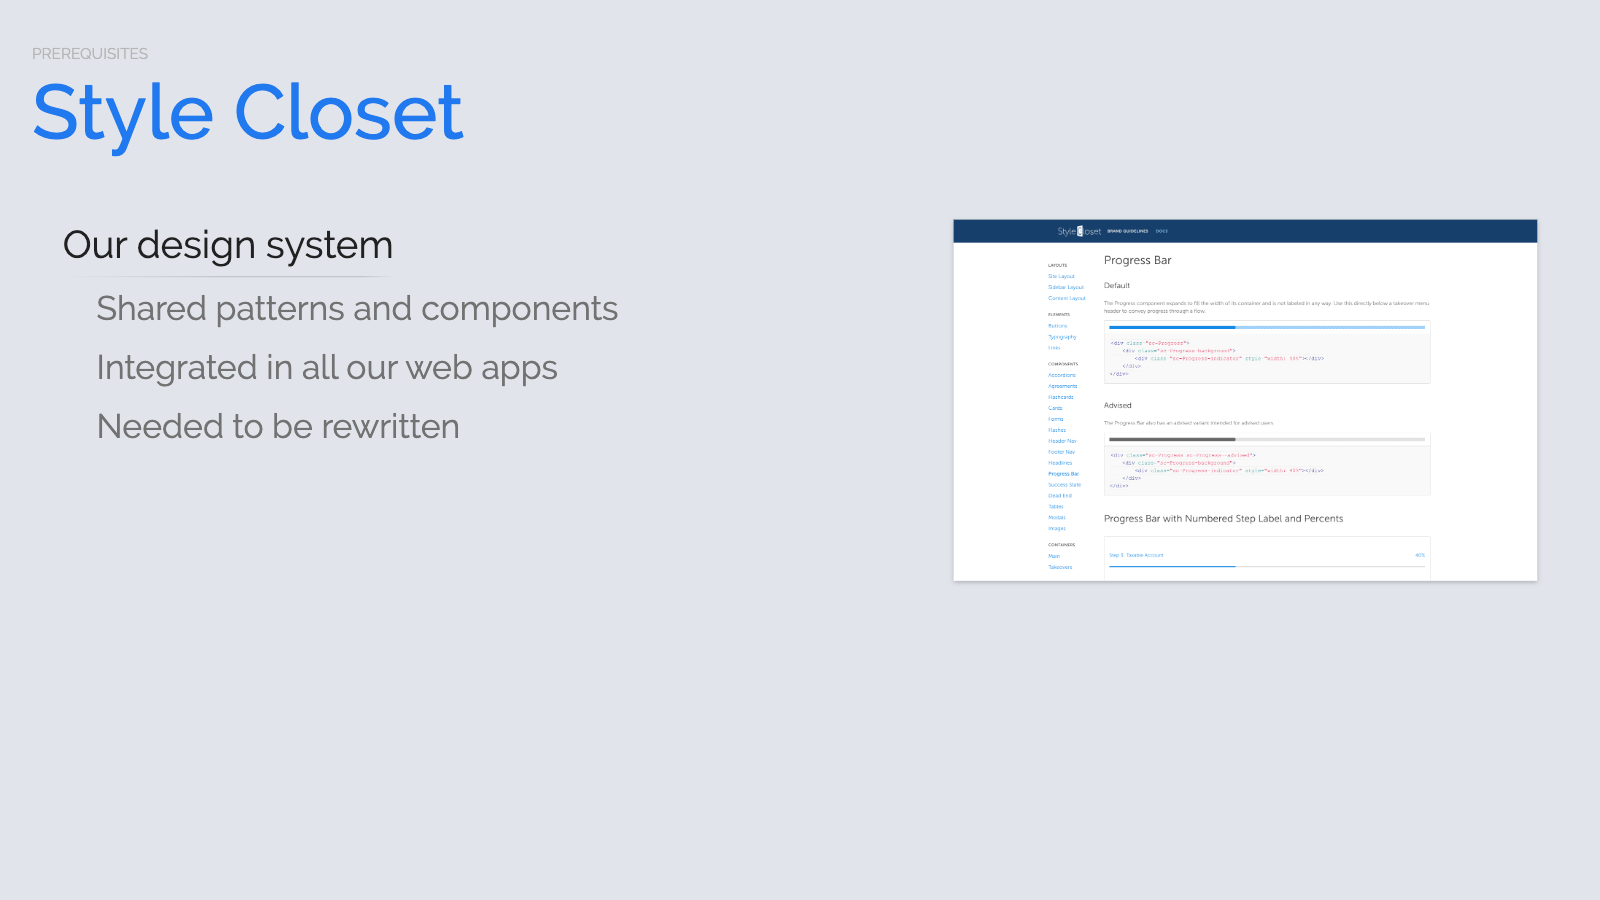 Slide content, Style Closet, Betterment's design system, which needed to be rewritten as part of this project